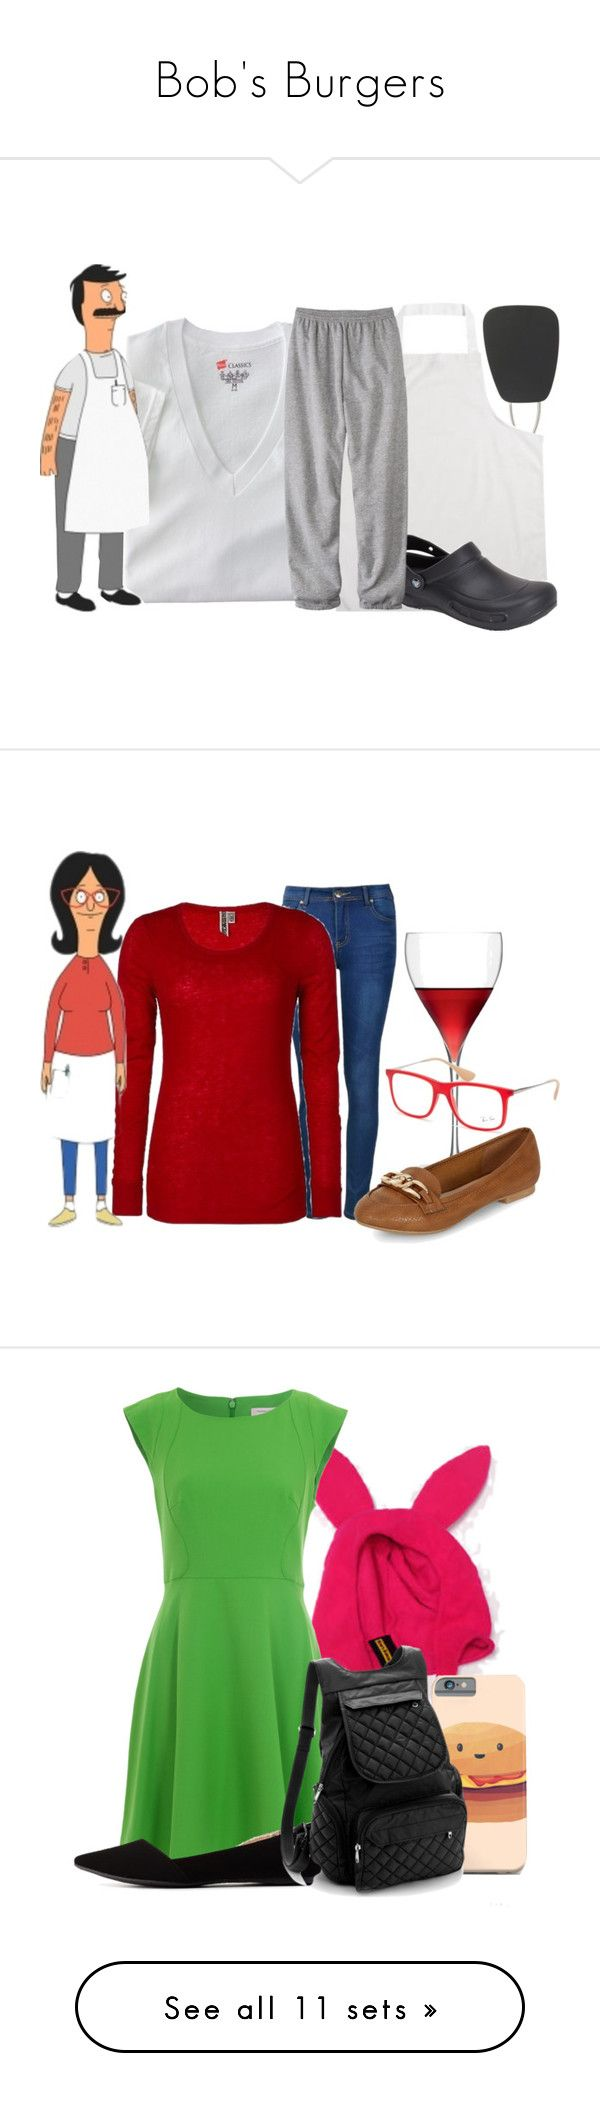 """Bob's Burgers"" by almostfamous86 ❤ liked on Polyvore featuring OXO, Hanes, Crocs, men's fashion, menswear, television, casualoutfit, cartoons, bobsburgers and Ally Fashion"